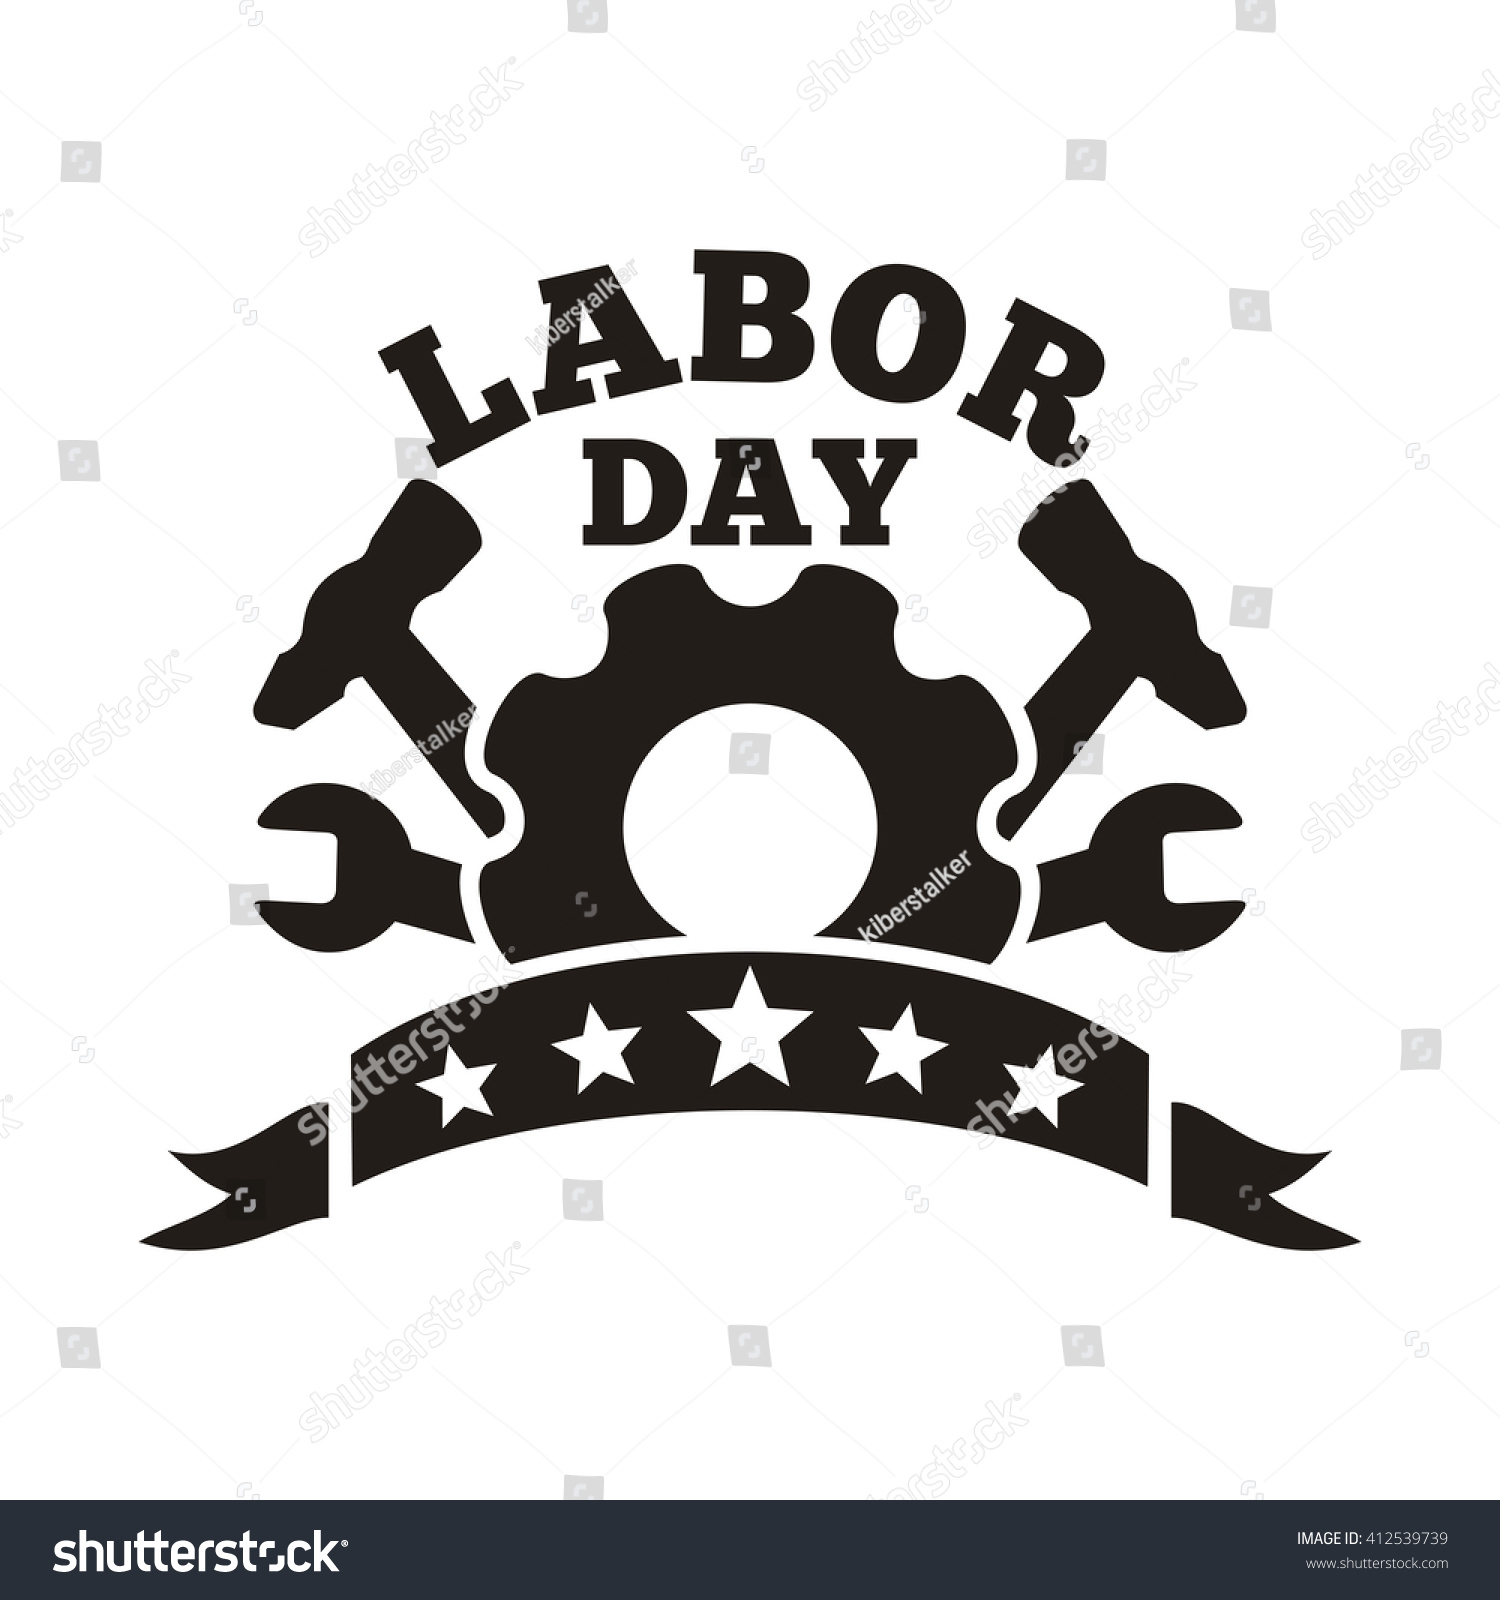 Labor day logo international workers day stock vector 412539739 labor day logo international workers day may day workers day card buycottarizona Choice Image